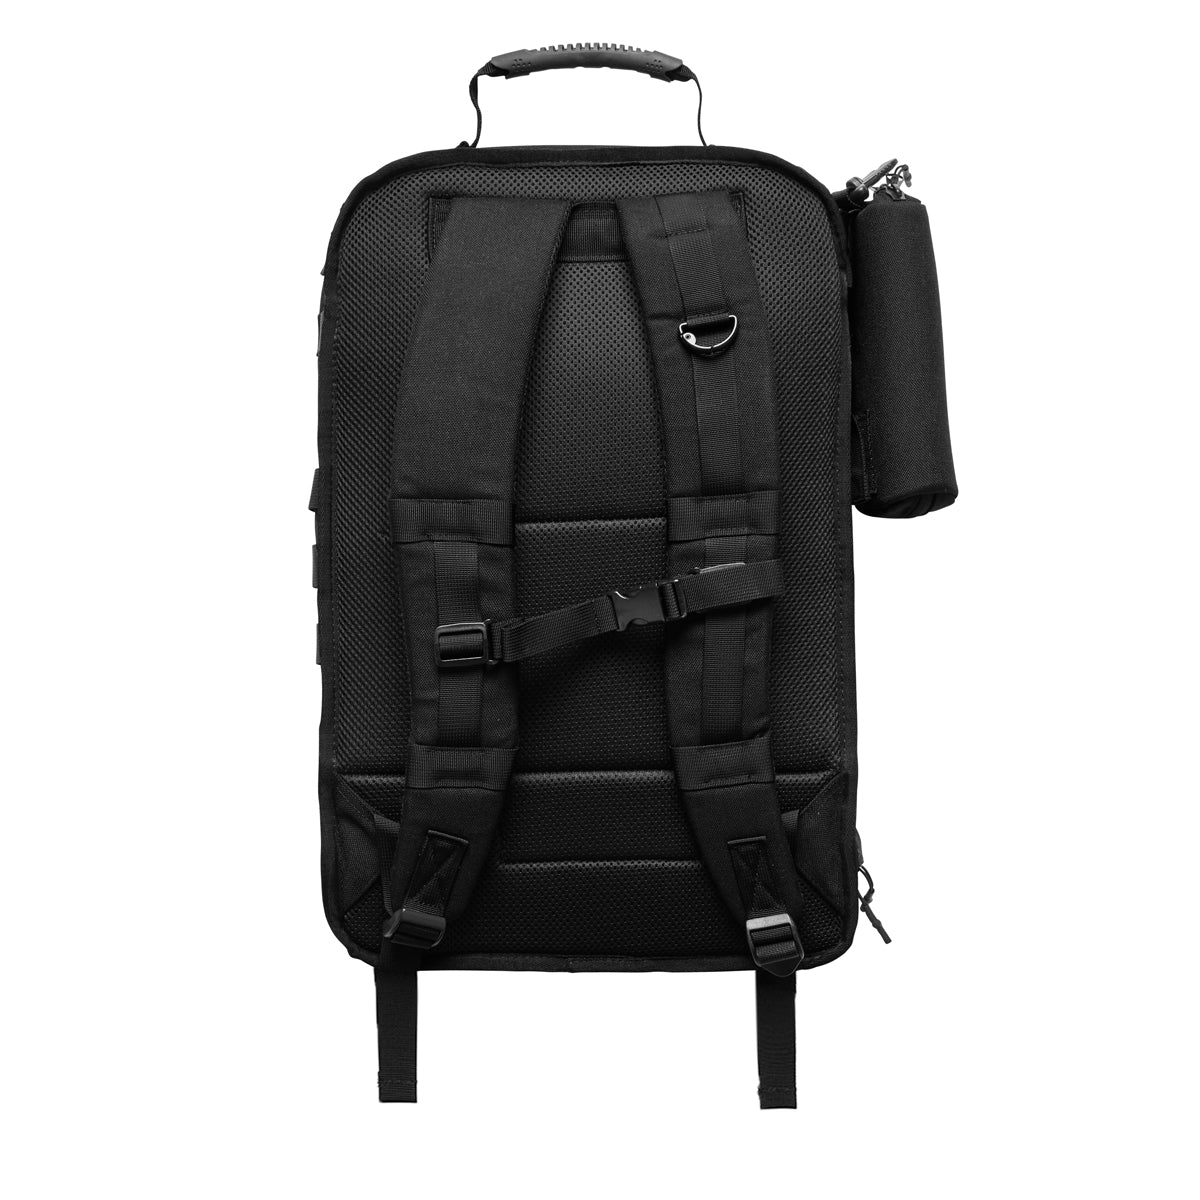 0275. Modular Everyday Pack - Black